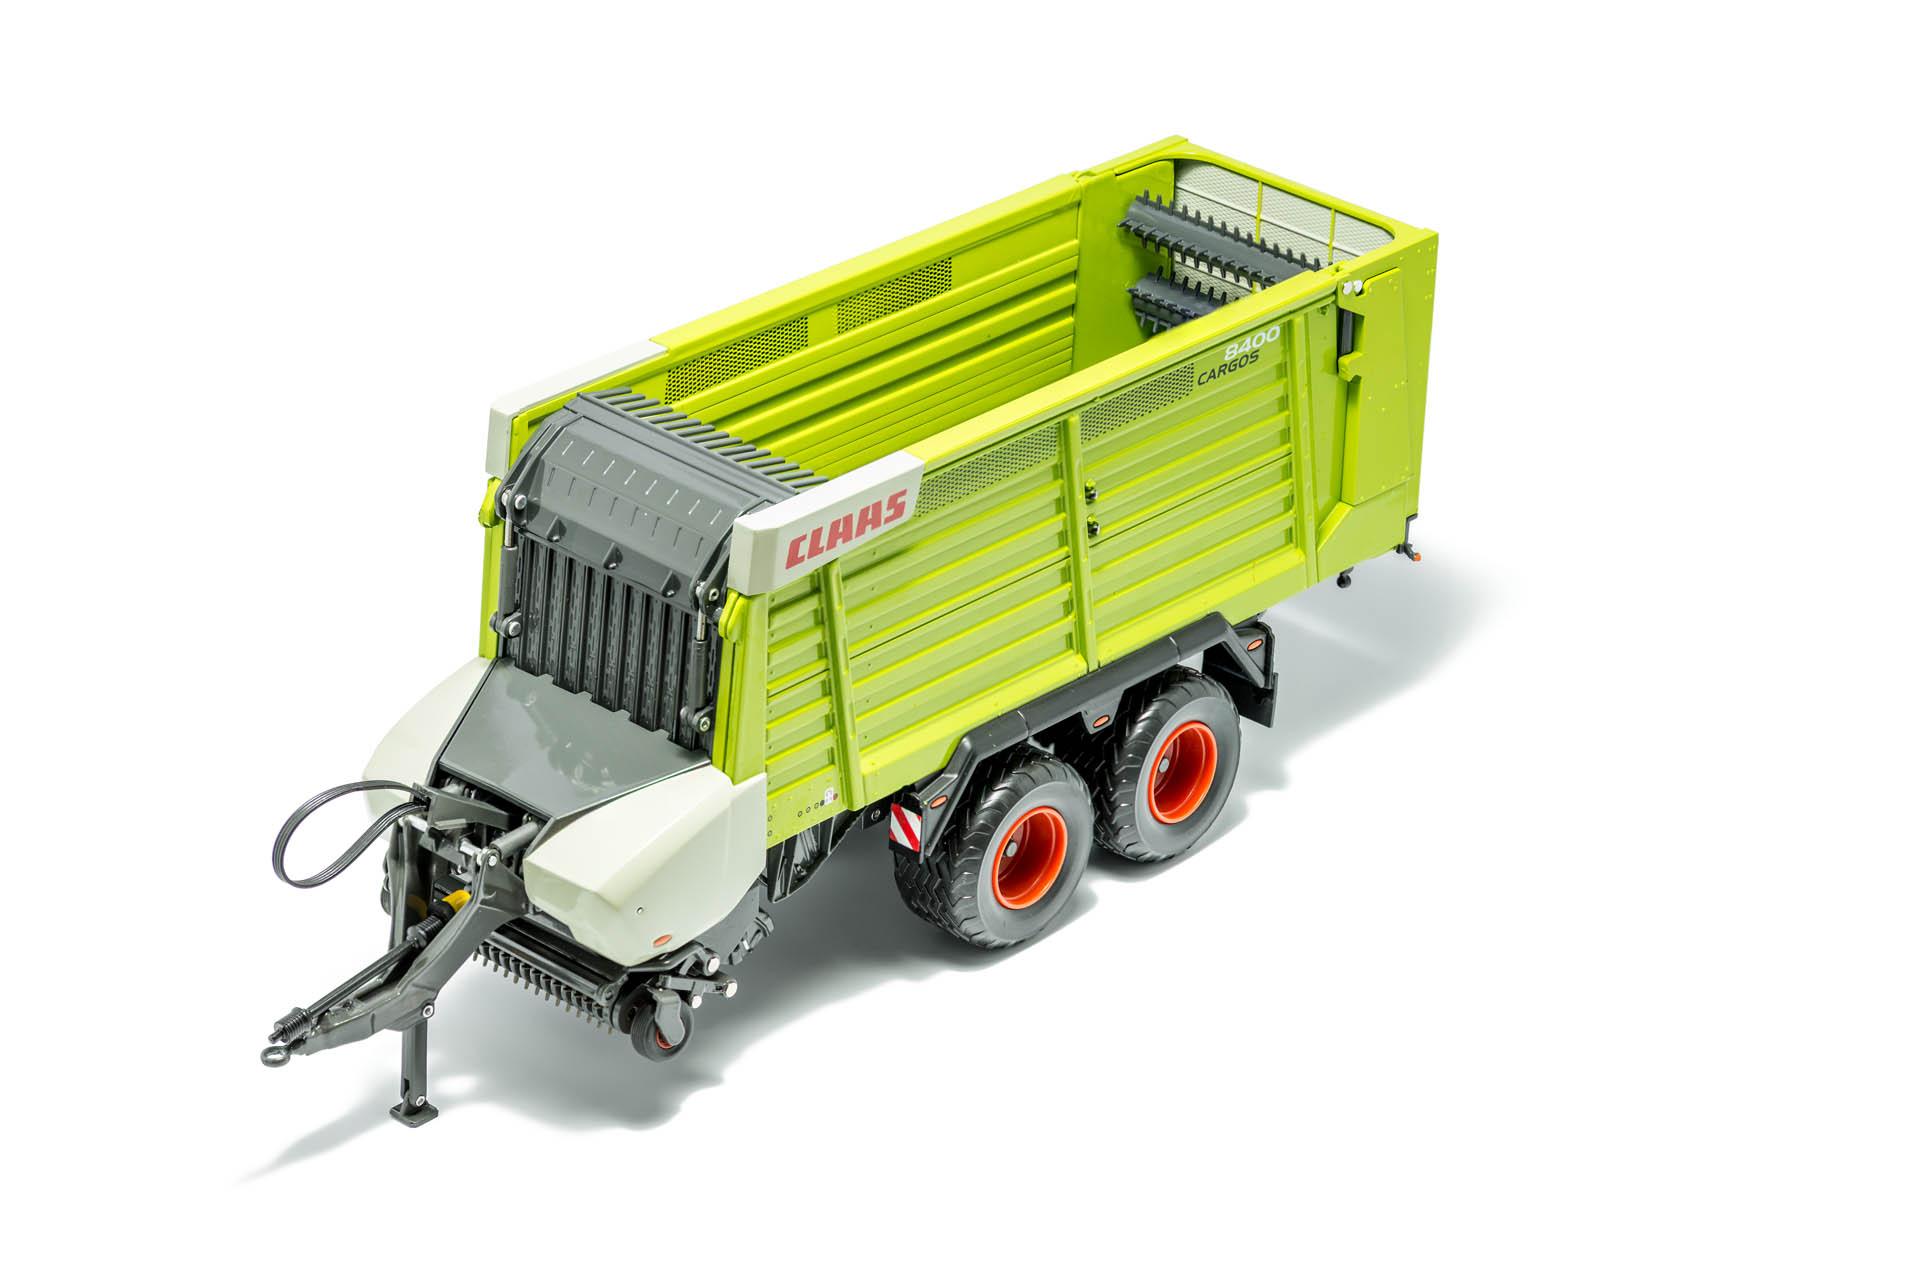 Claas Cargos 8400 Trailer